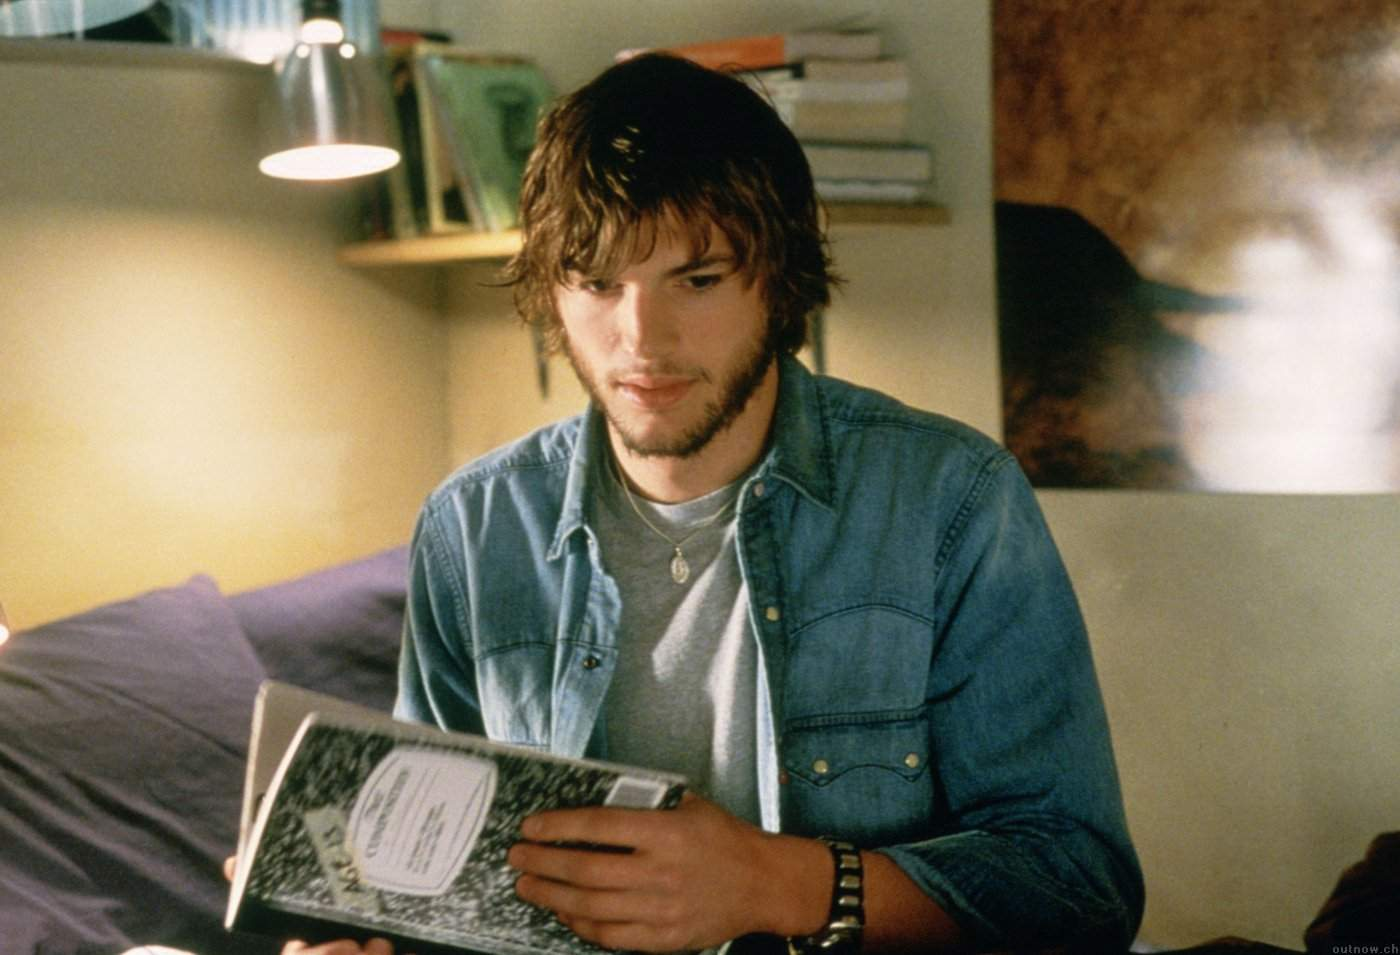 Evan Treborn (Ashton Kutcher) develops an ability to travel in time in The Butterfly Effect (2004)